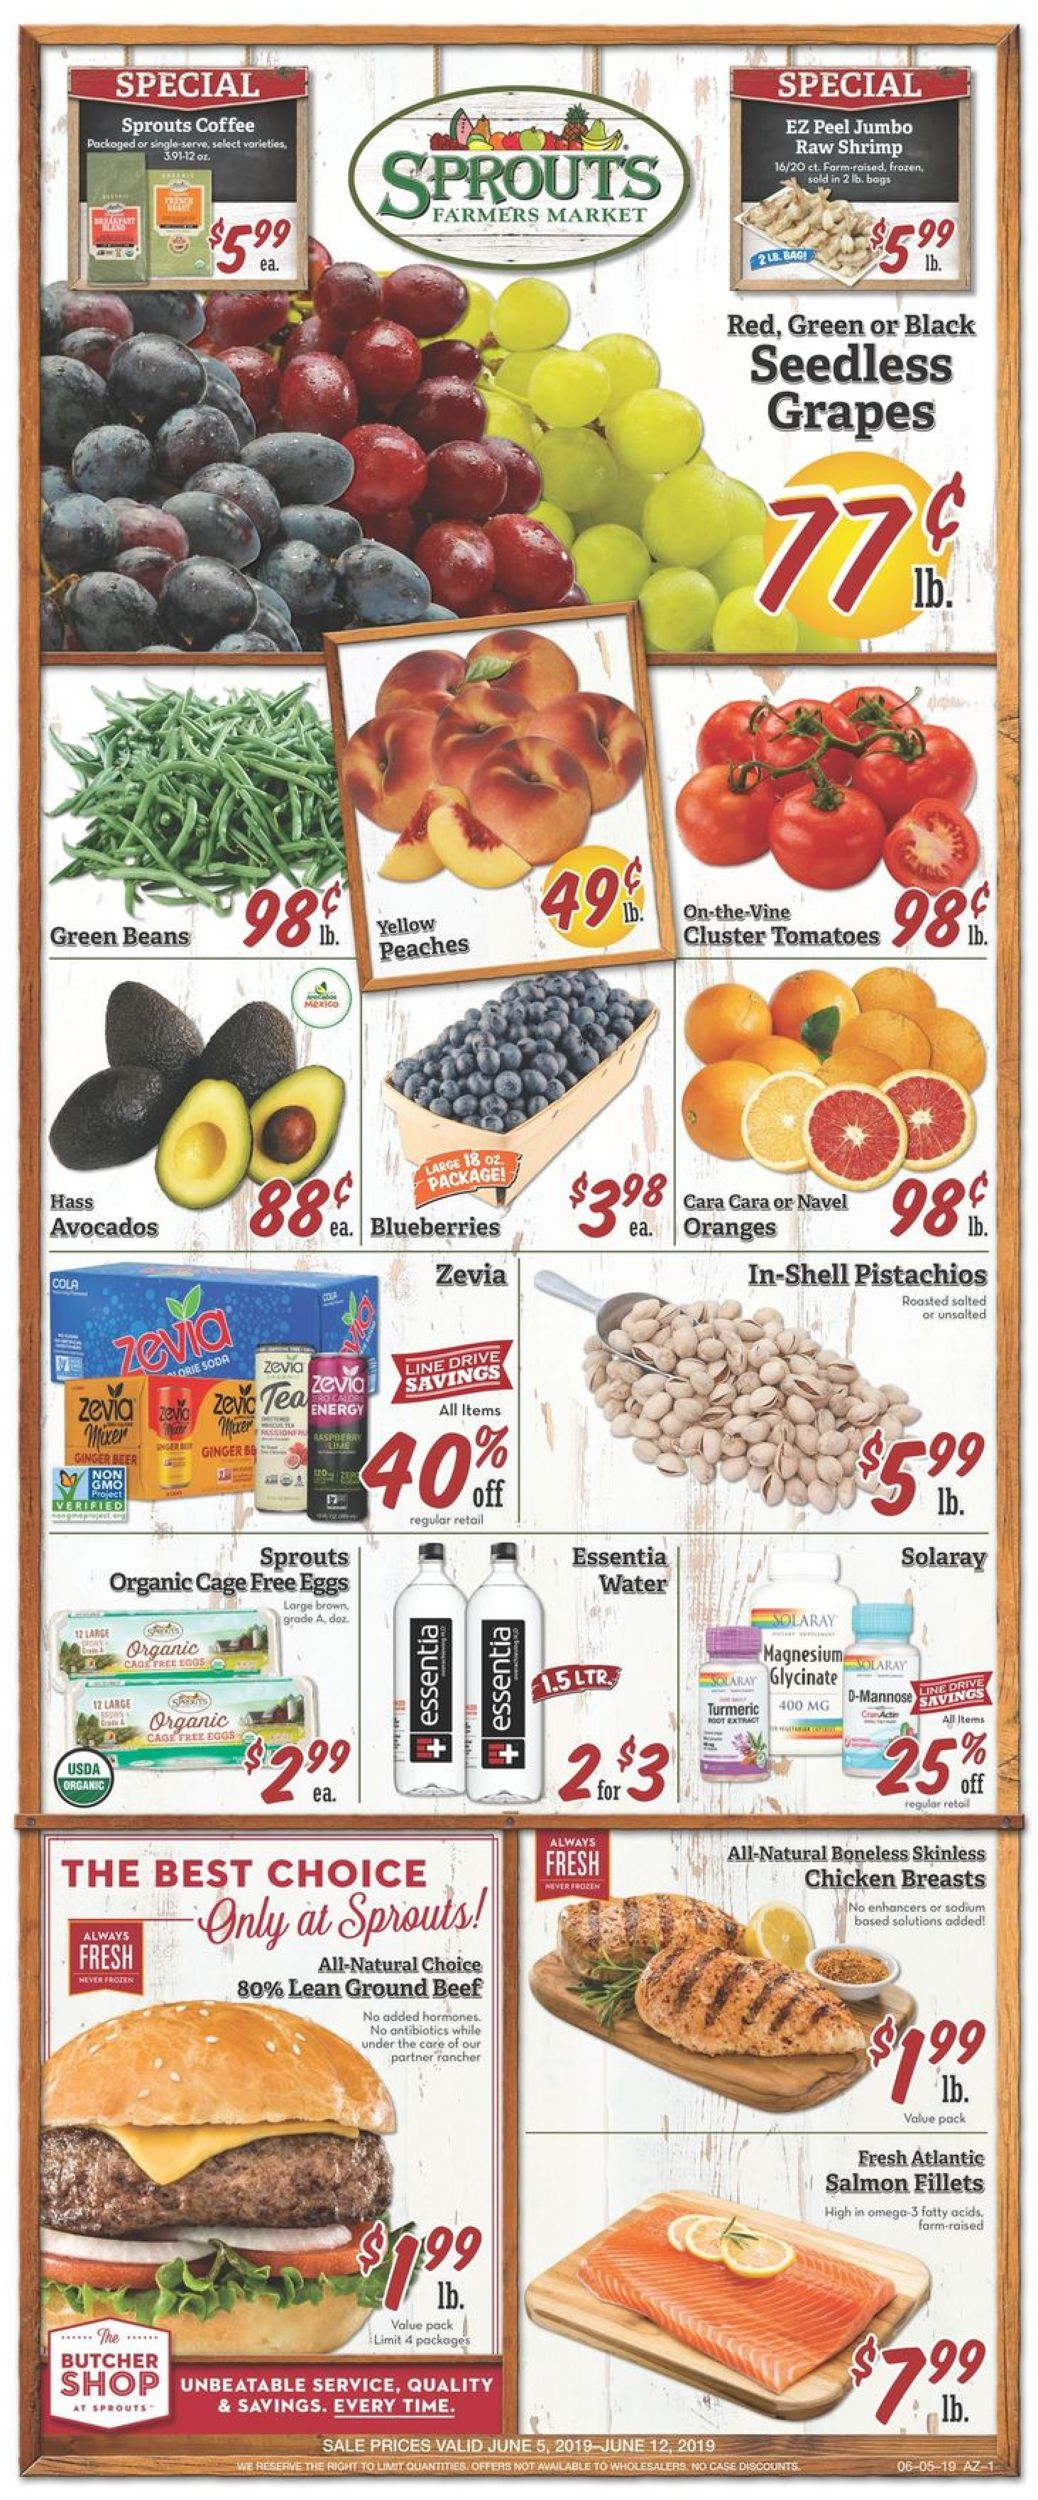 Sprouts Current weekly ad 06/05 - 06/12/2019 - weekly-ad-24 com